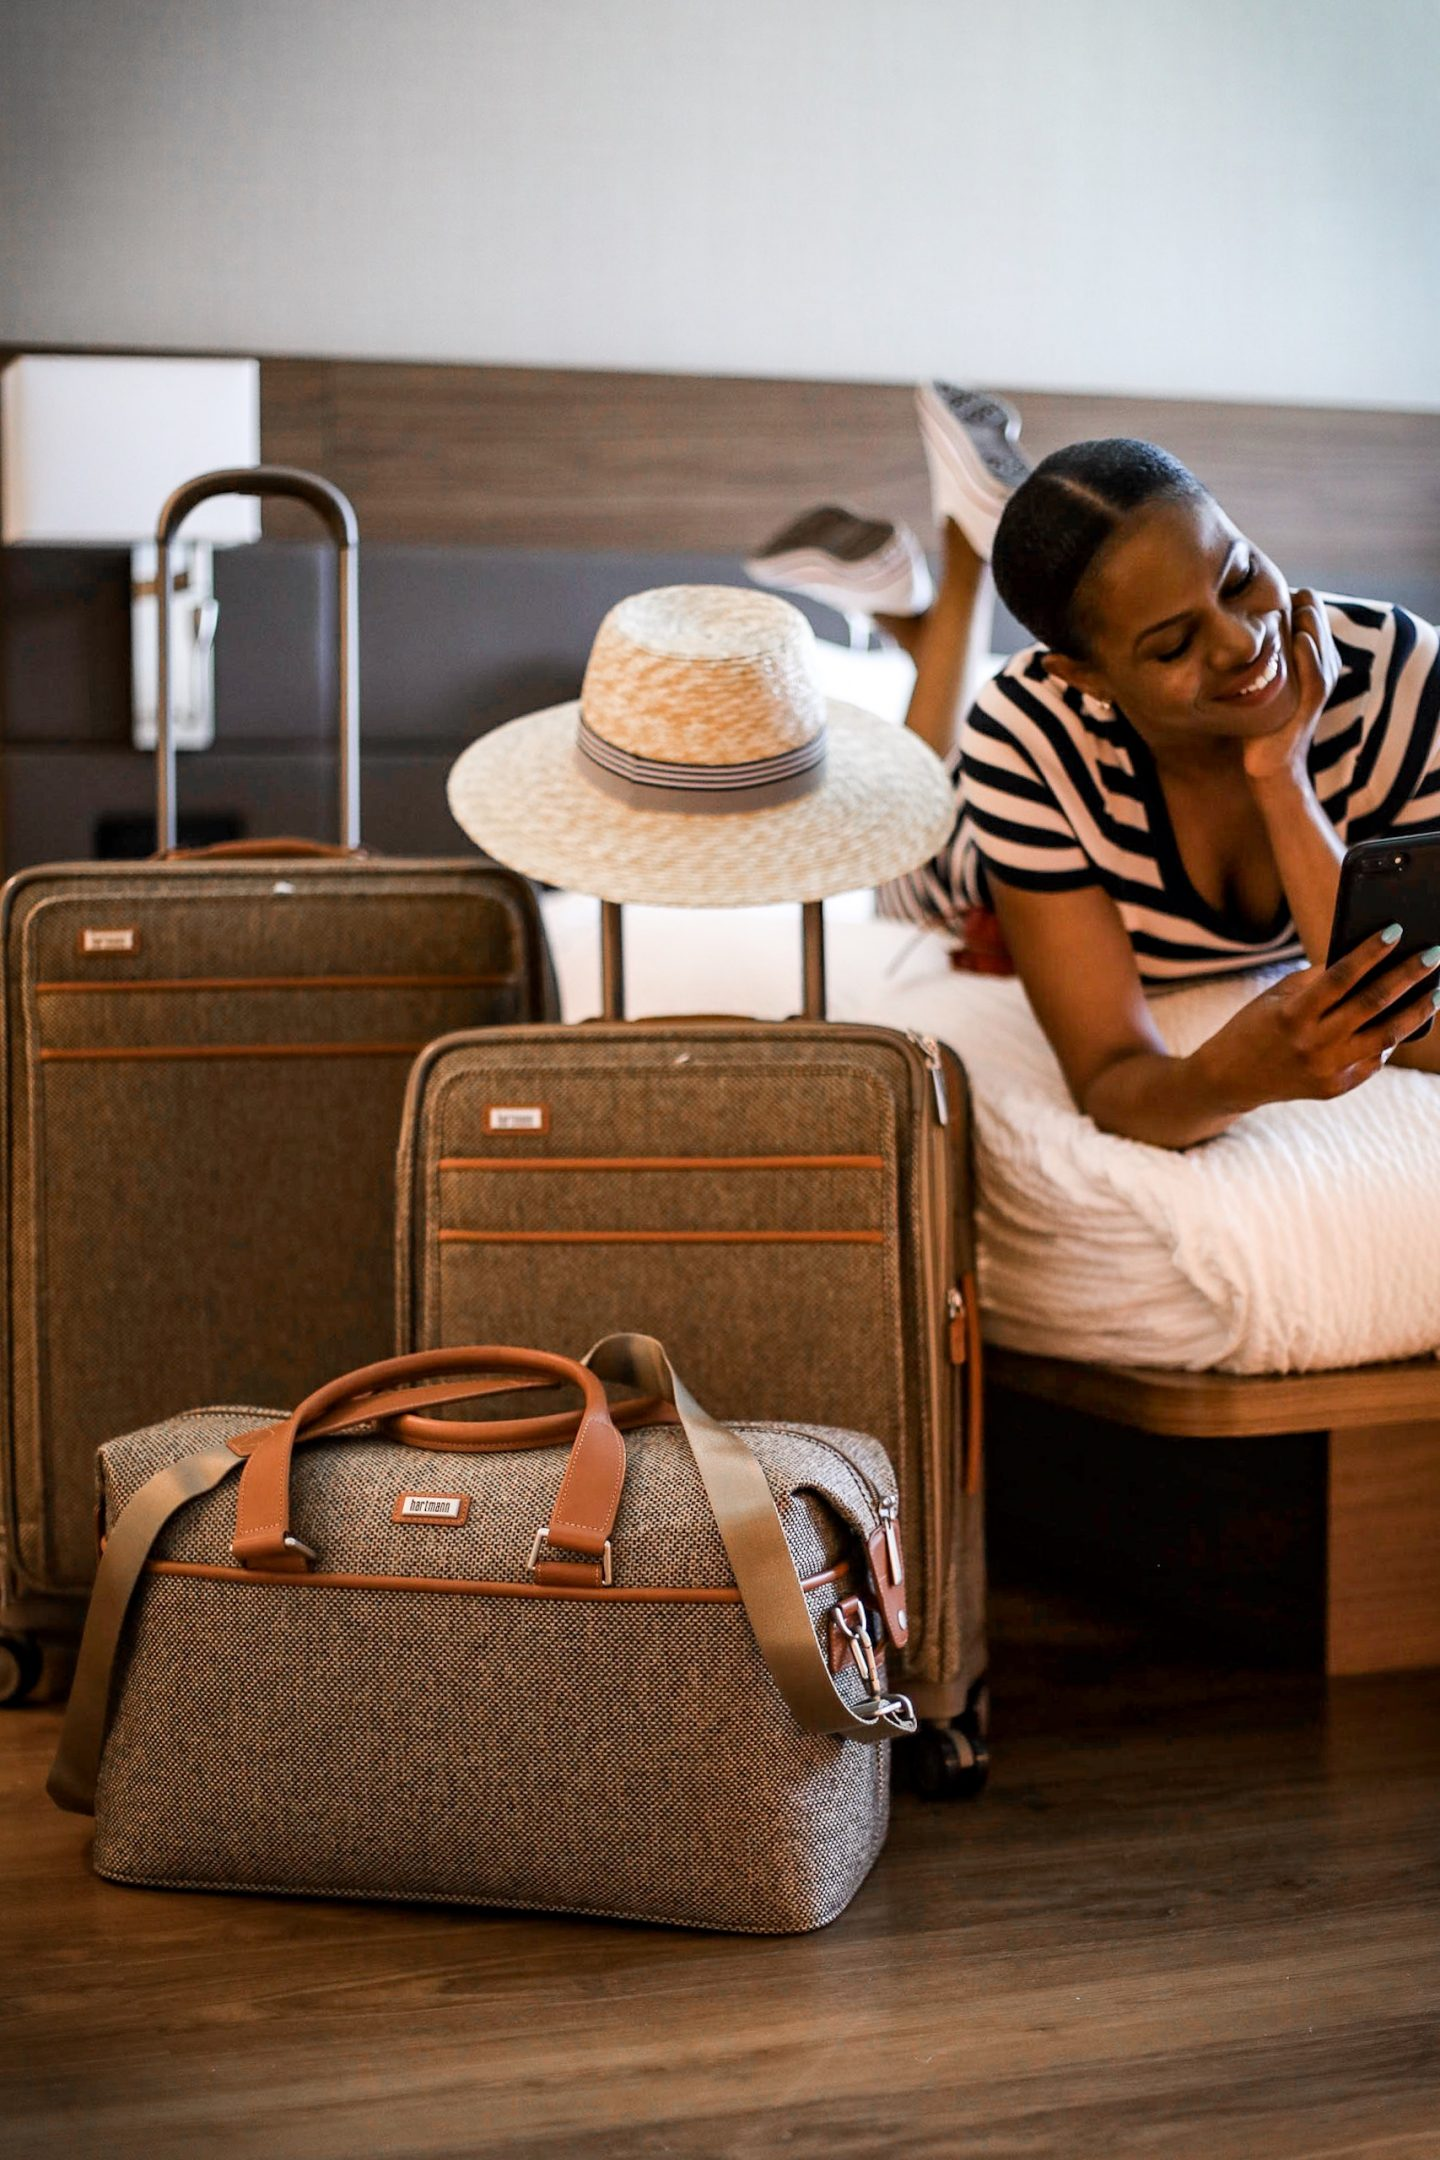 7 PACKING TIPS FOR YOUR BEST TRIP EVER